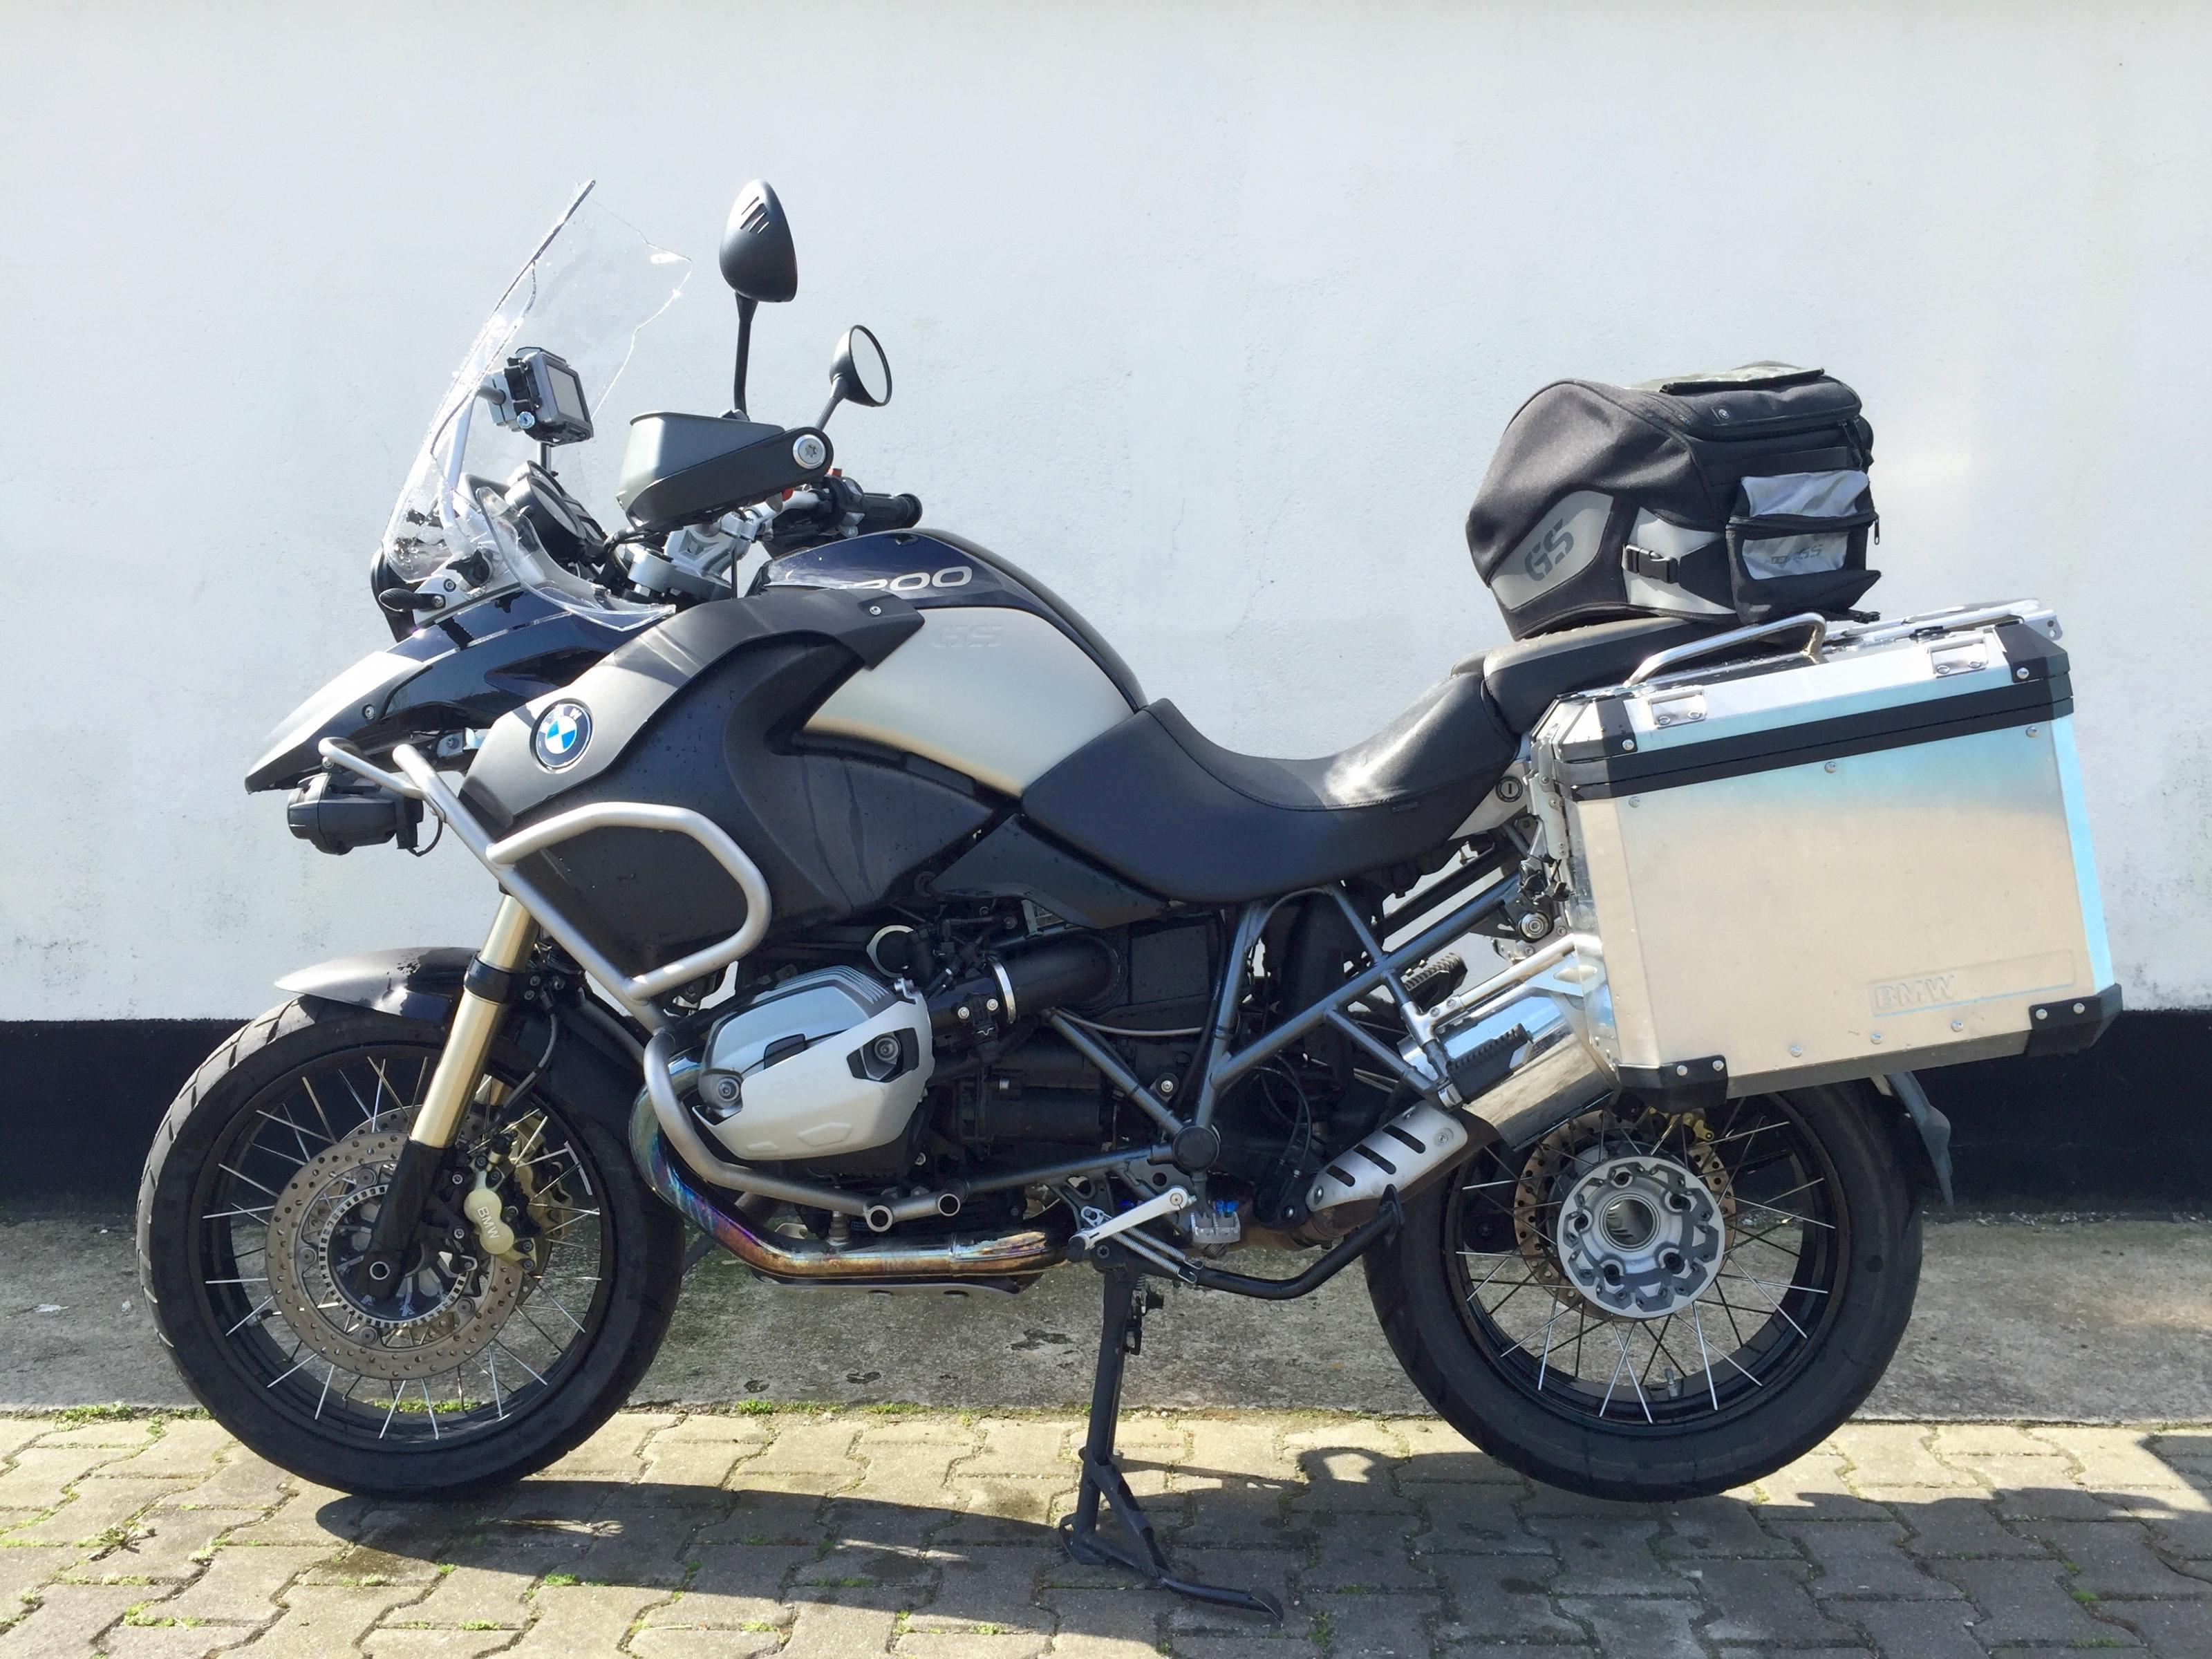 biete r 1200 gs adventure bmw r 1200 gs adventure 90j bmw 2 j garantie navi koffer. Black Bedroom Furniture Sets. Home Design Ideas